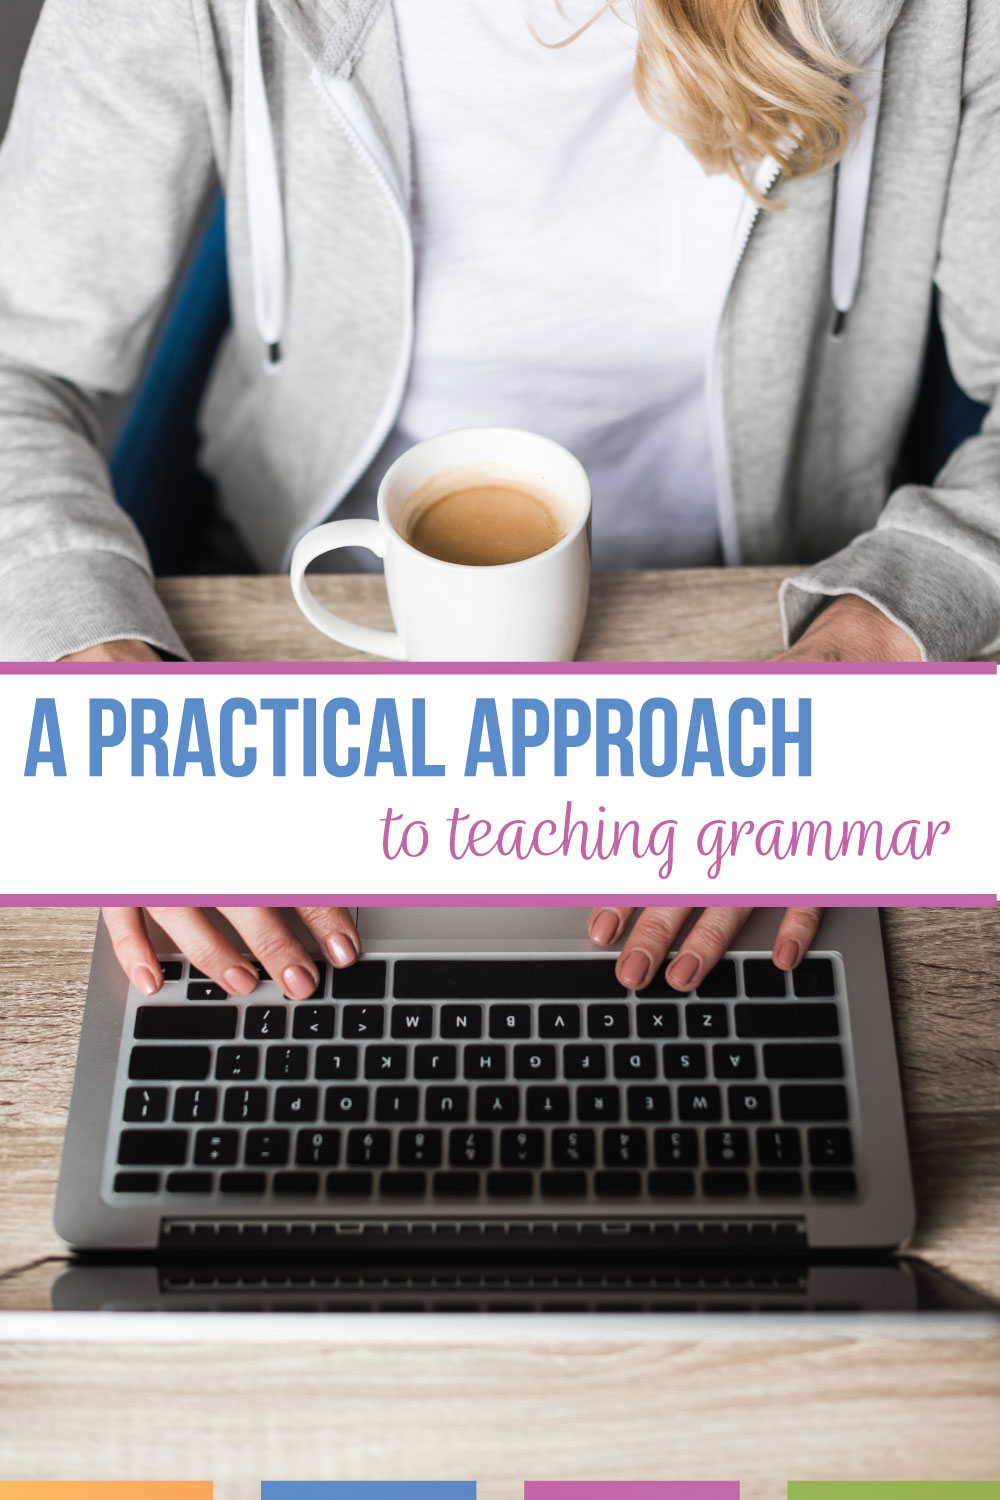 ELA teachers: you need a practical approach to grammar lessons. Different approaches in teaching grammar exist, but do your language arts students retain grammar terms & grammar concepts? Can English students apply grammar to their writing? A practical guide to English grammar uses sensible grammar activities & engaging grammar lessons to make grammar stick with English language arts classes.